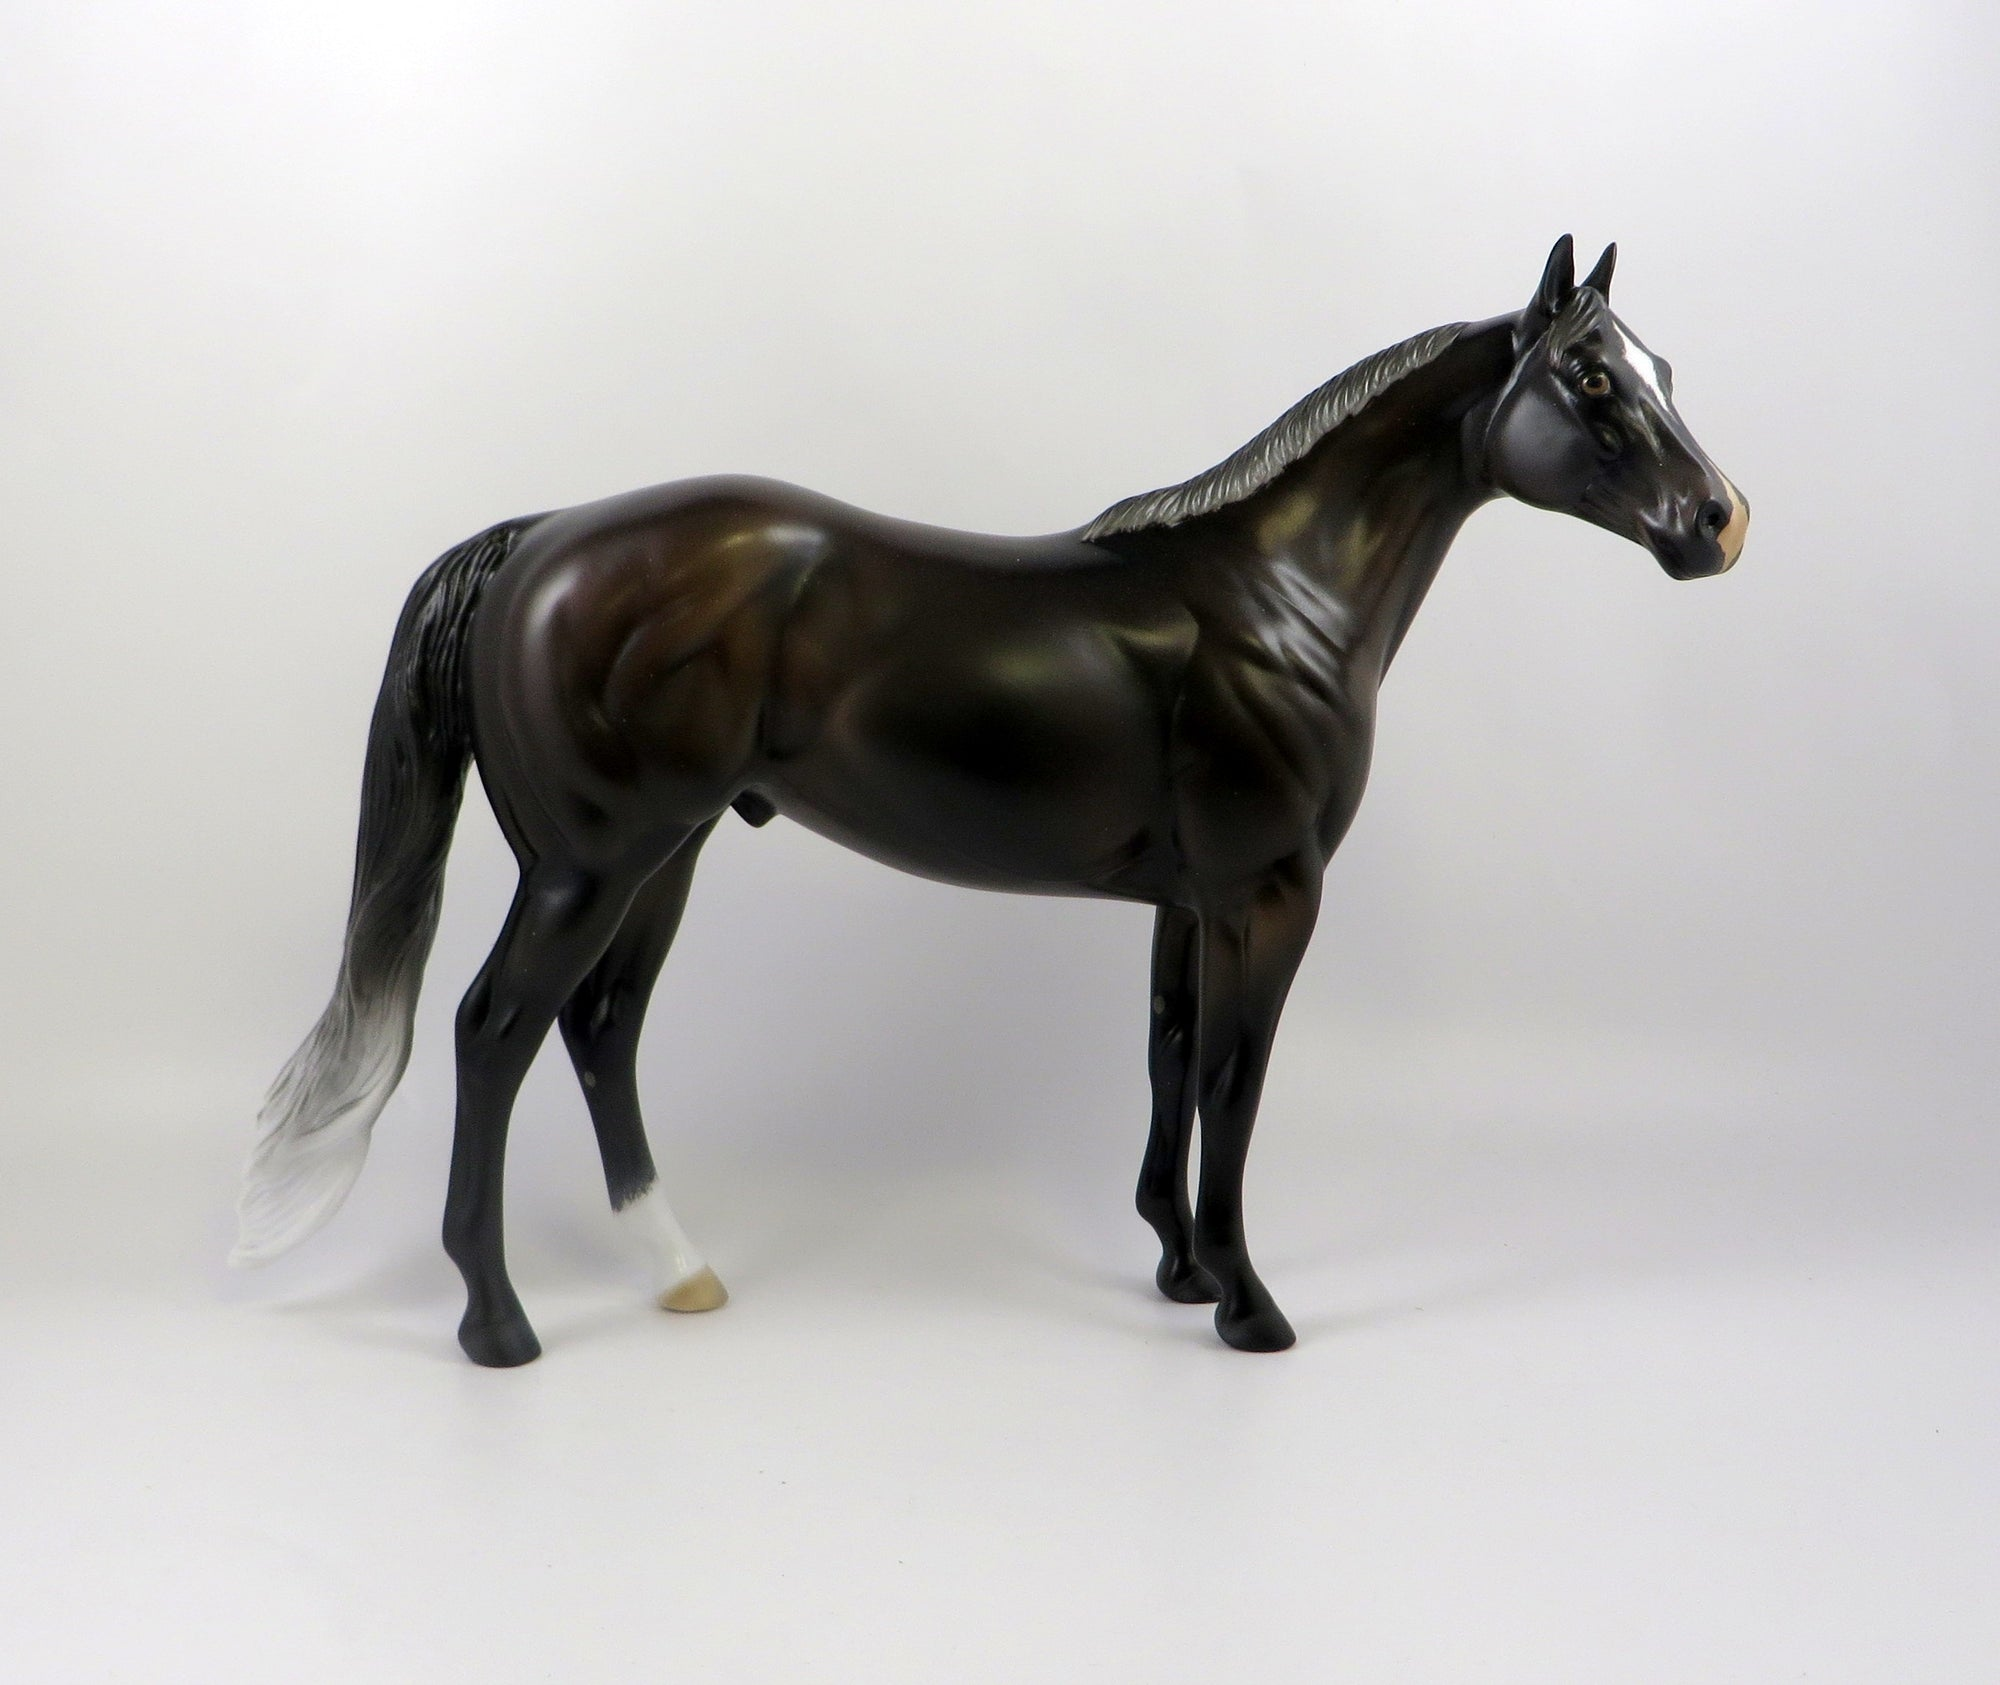 NEVADA SKY-OOAK BAY GOING GREY ISH MODEL HORSE 7/22/19